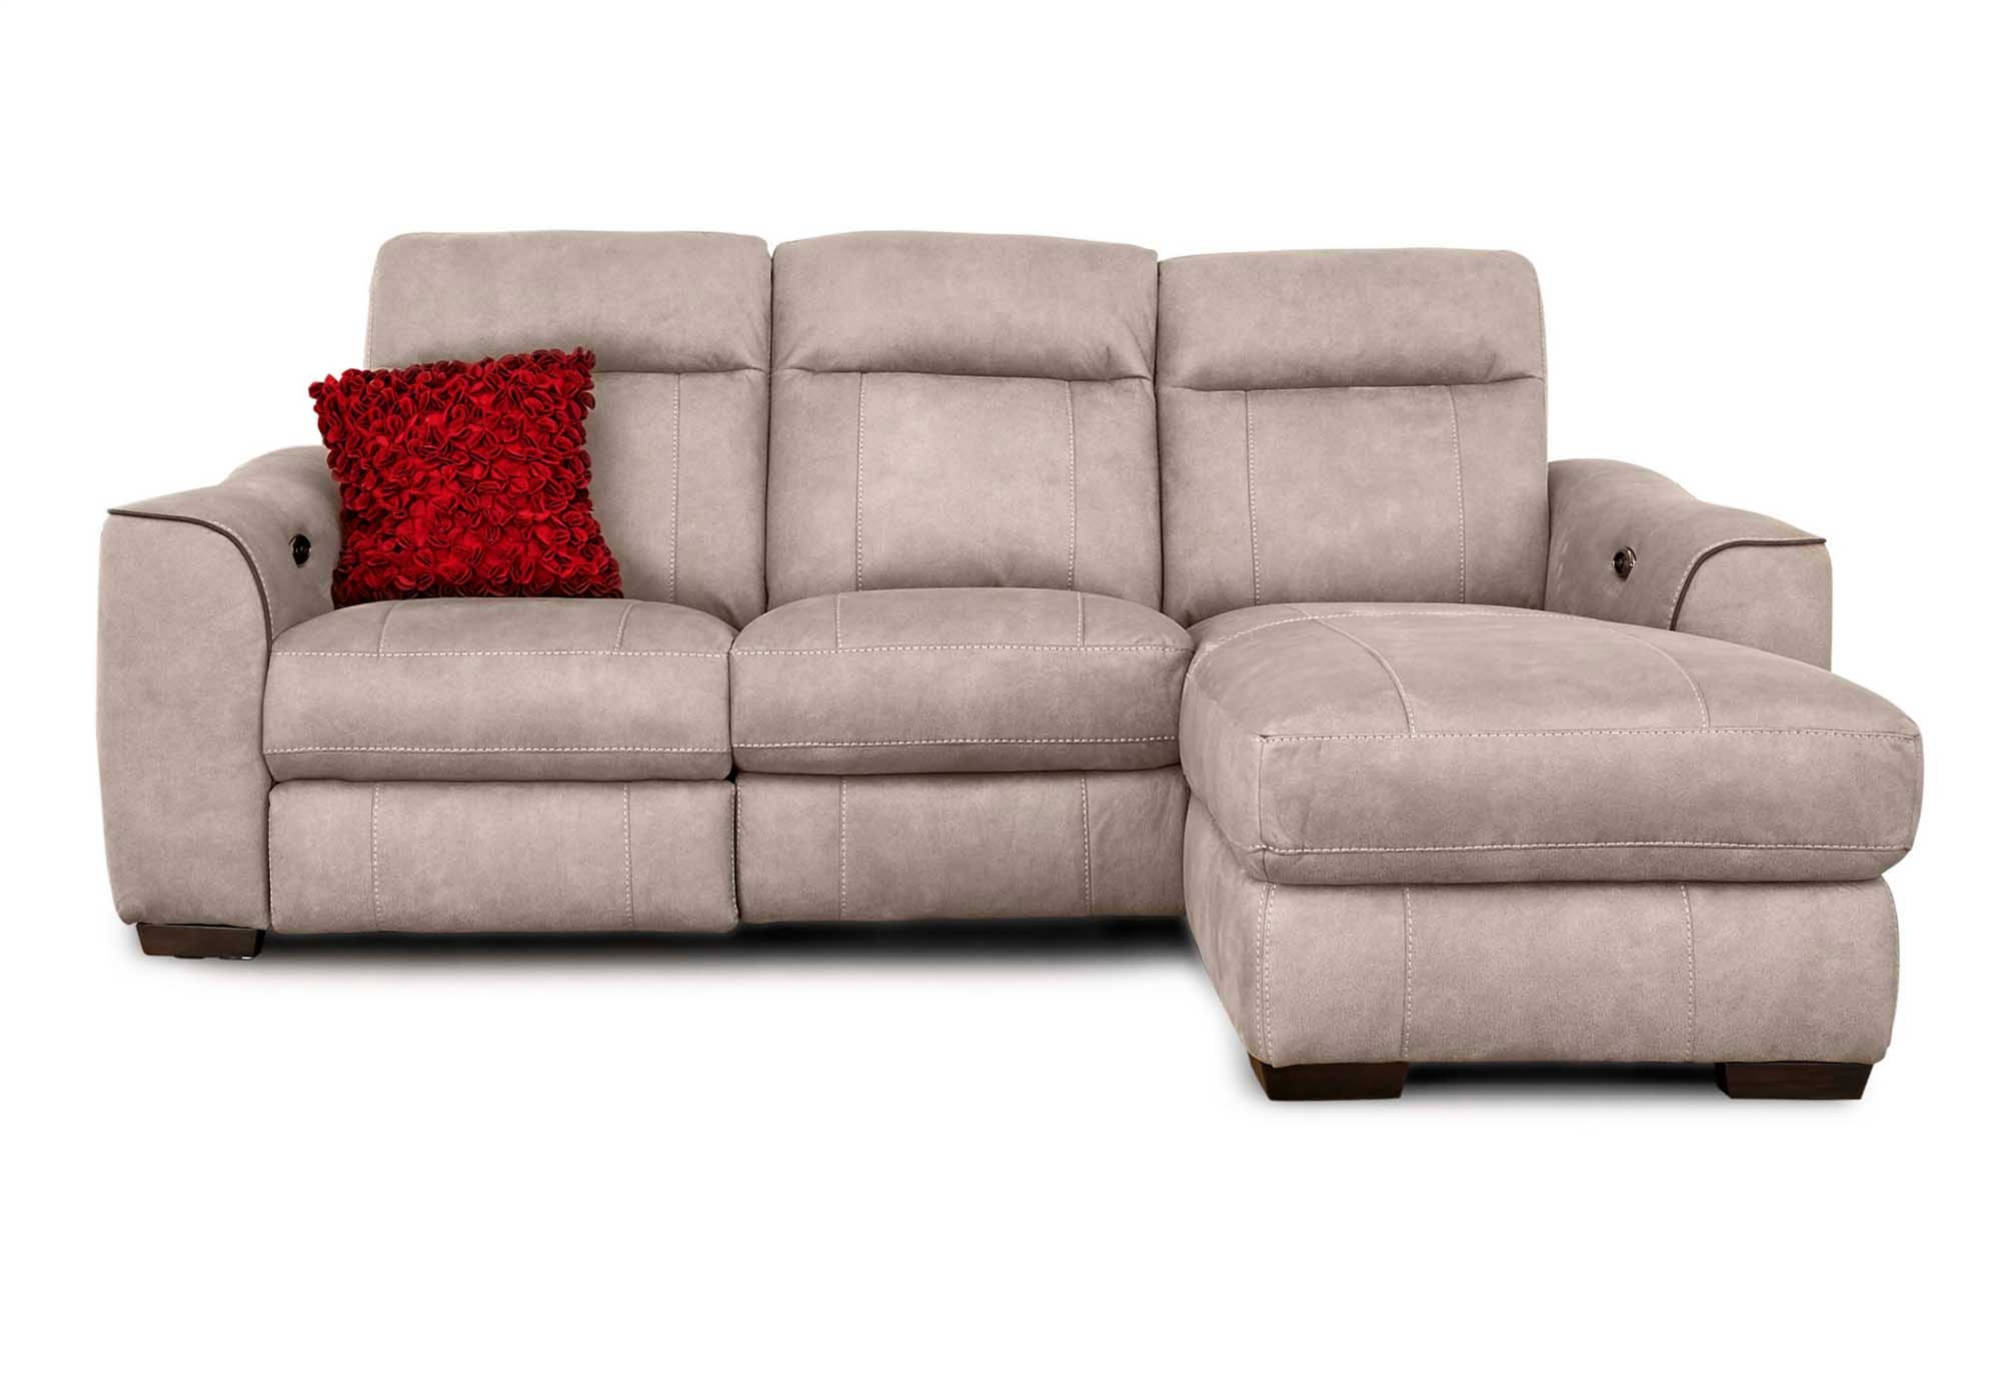 Oak Furniture Land Sofa Complaints Sofa Menzilperde Net